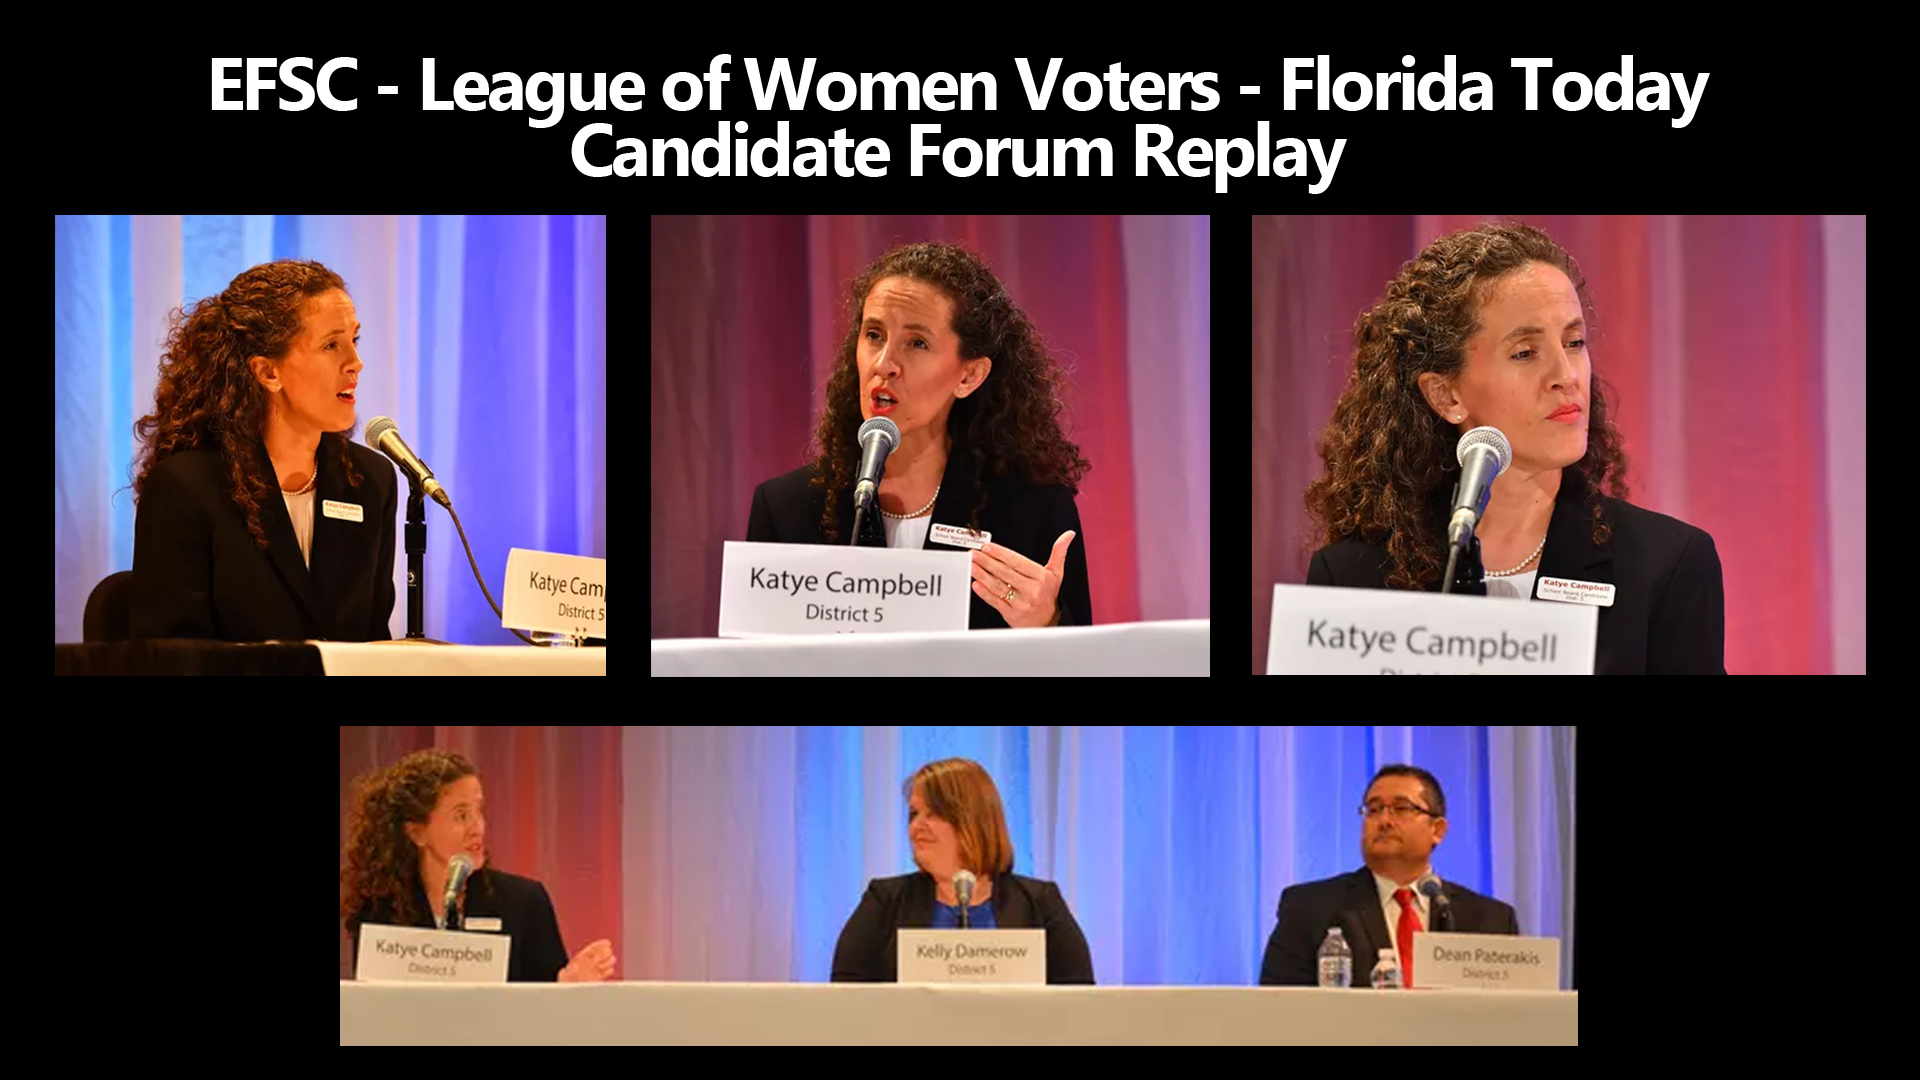 EFSC-LOWV-FT candidate forum